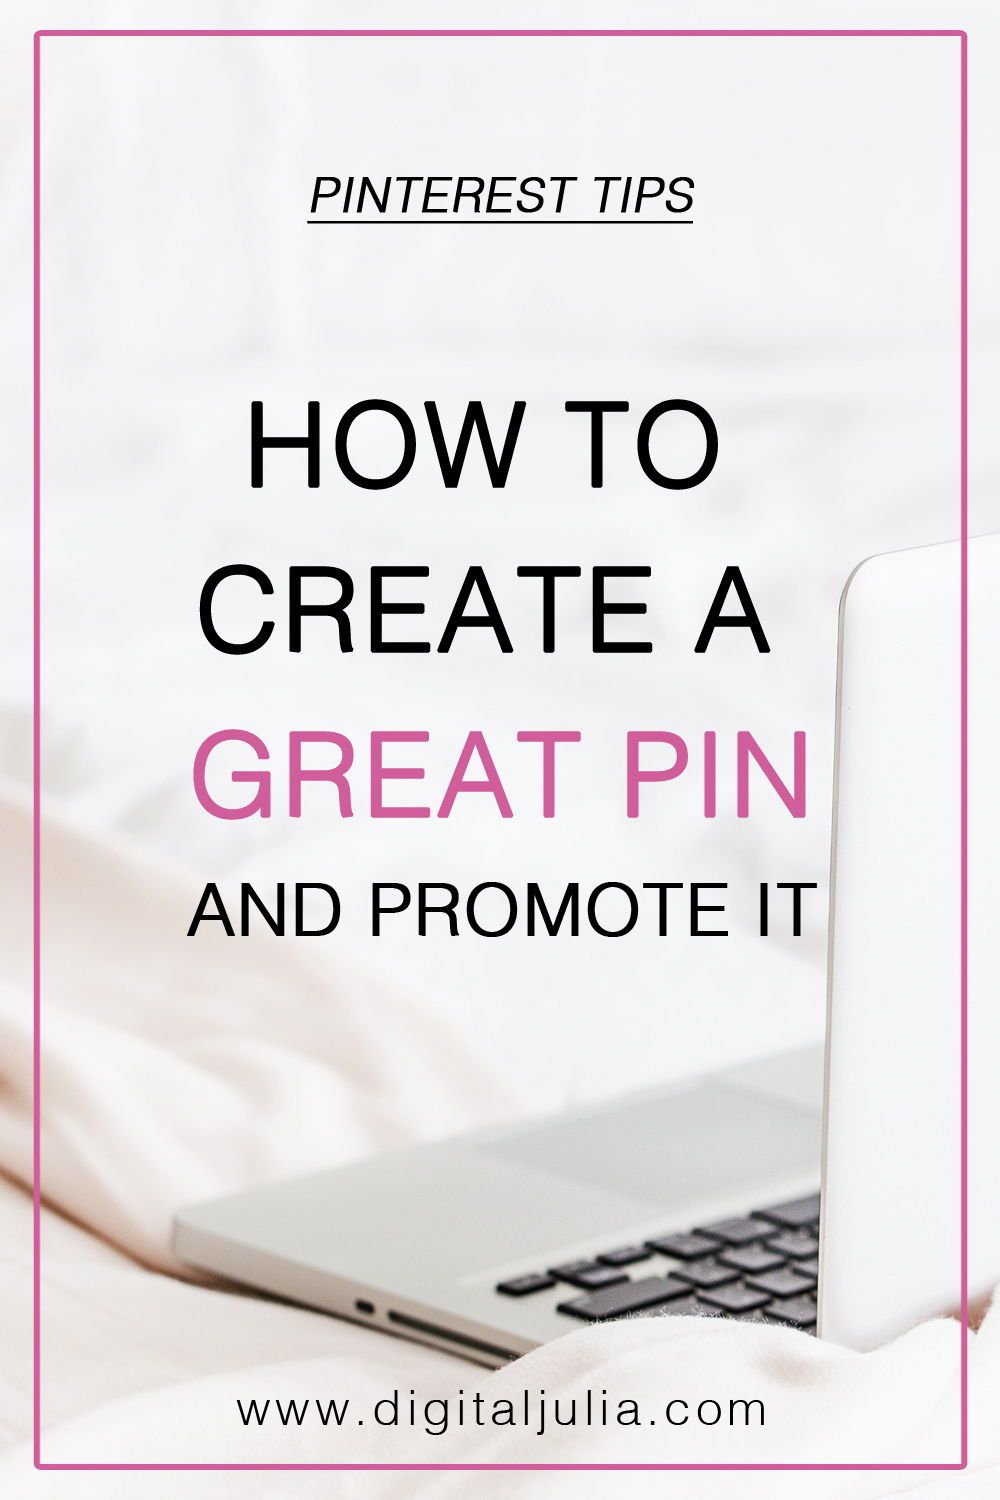 How To Create A Great Pin And Promote It Pinterest Manager